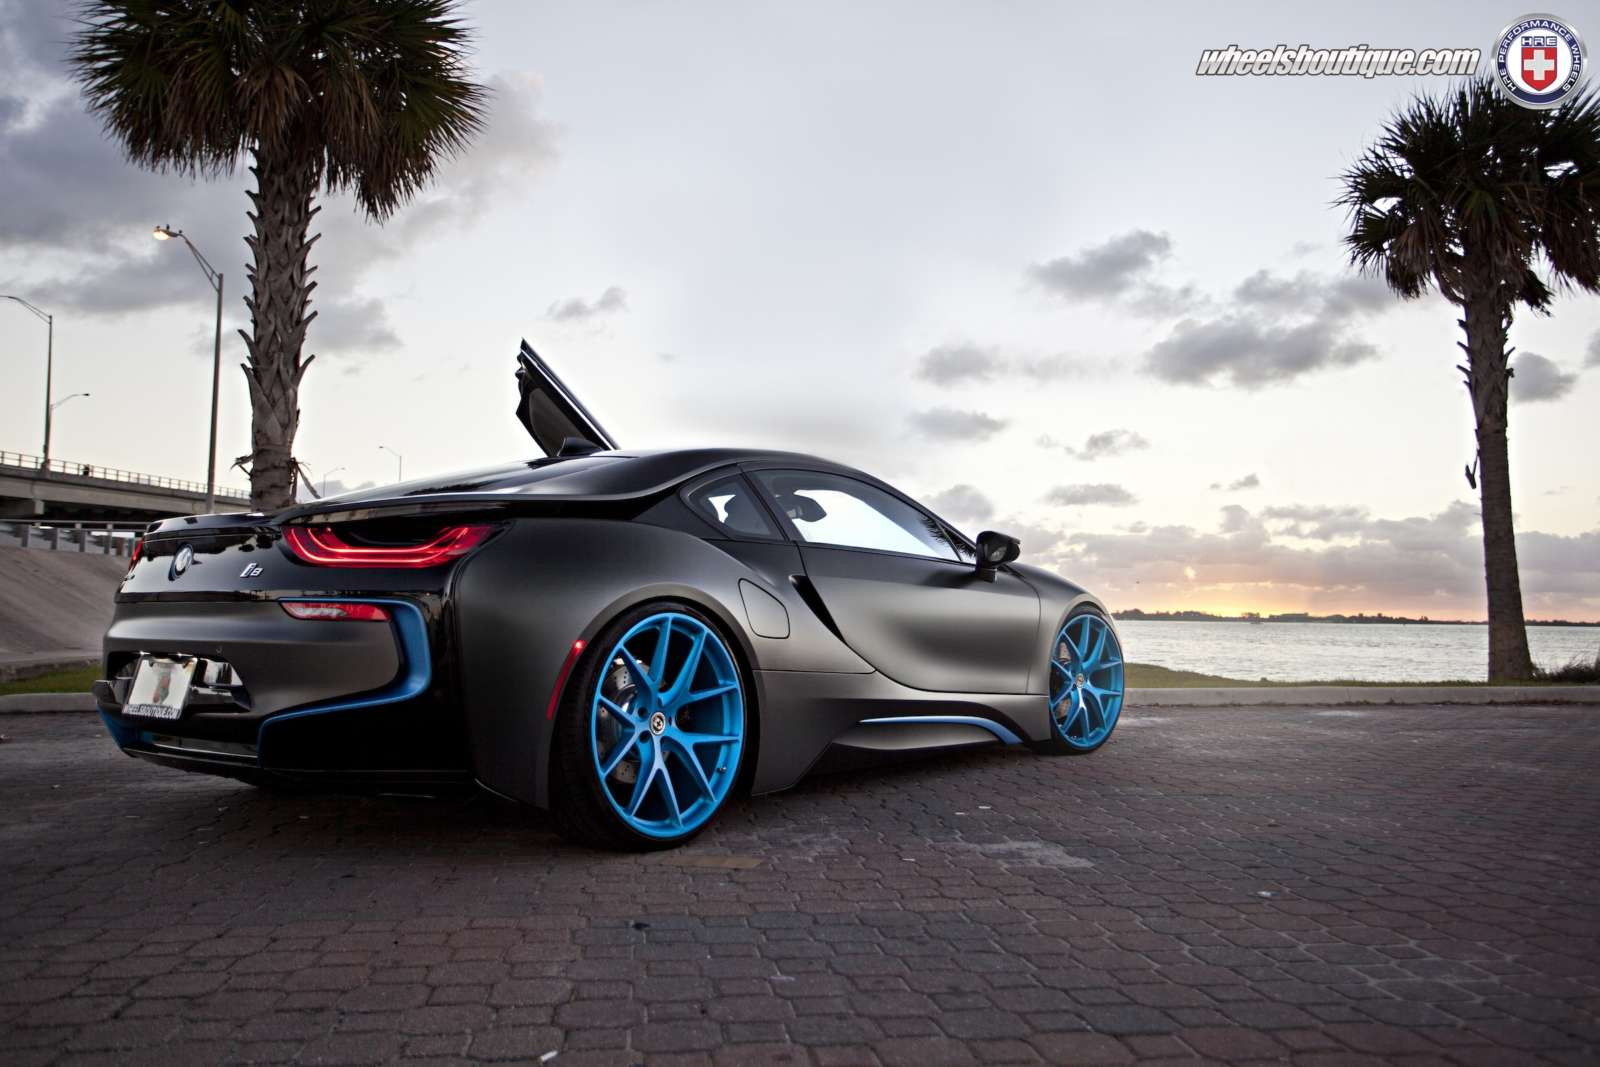 This Matte Black Wrapped Bmw I8 With Blue Hre Wheels Looks